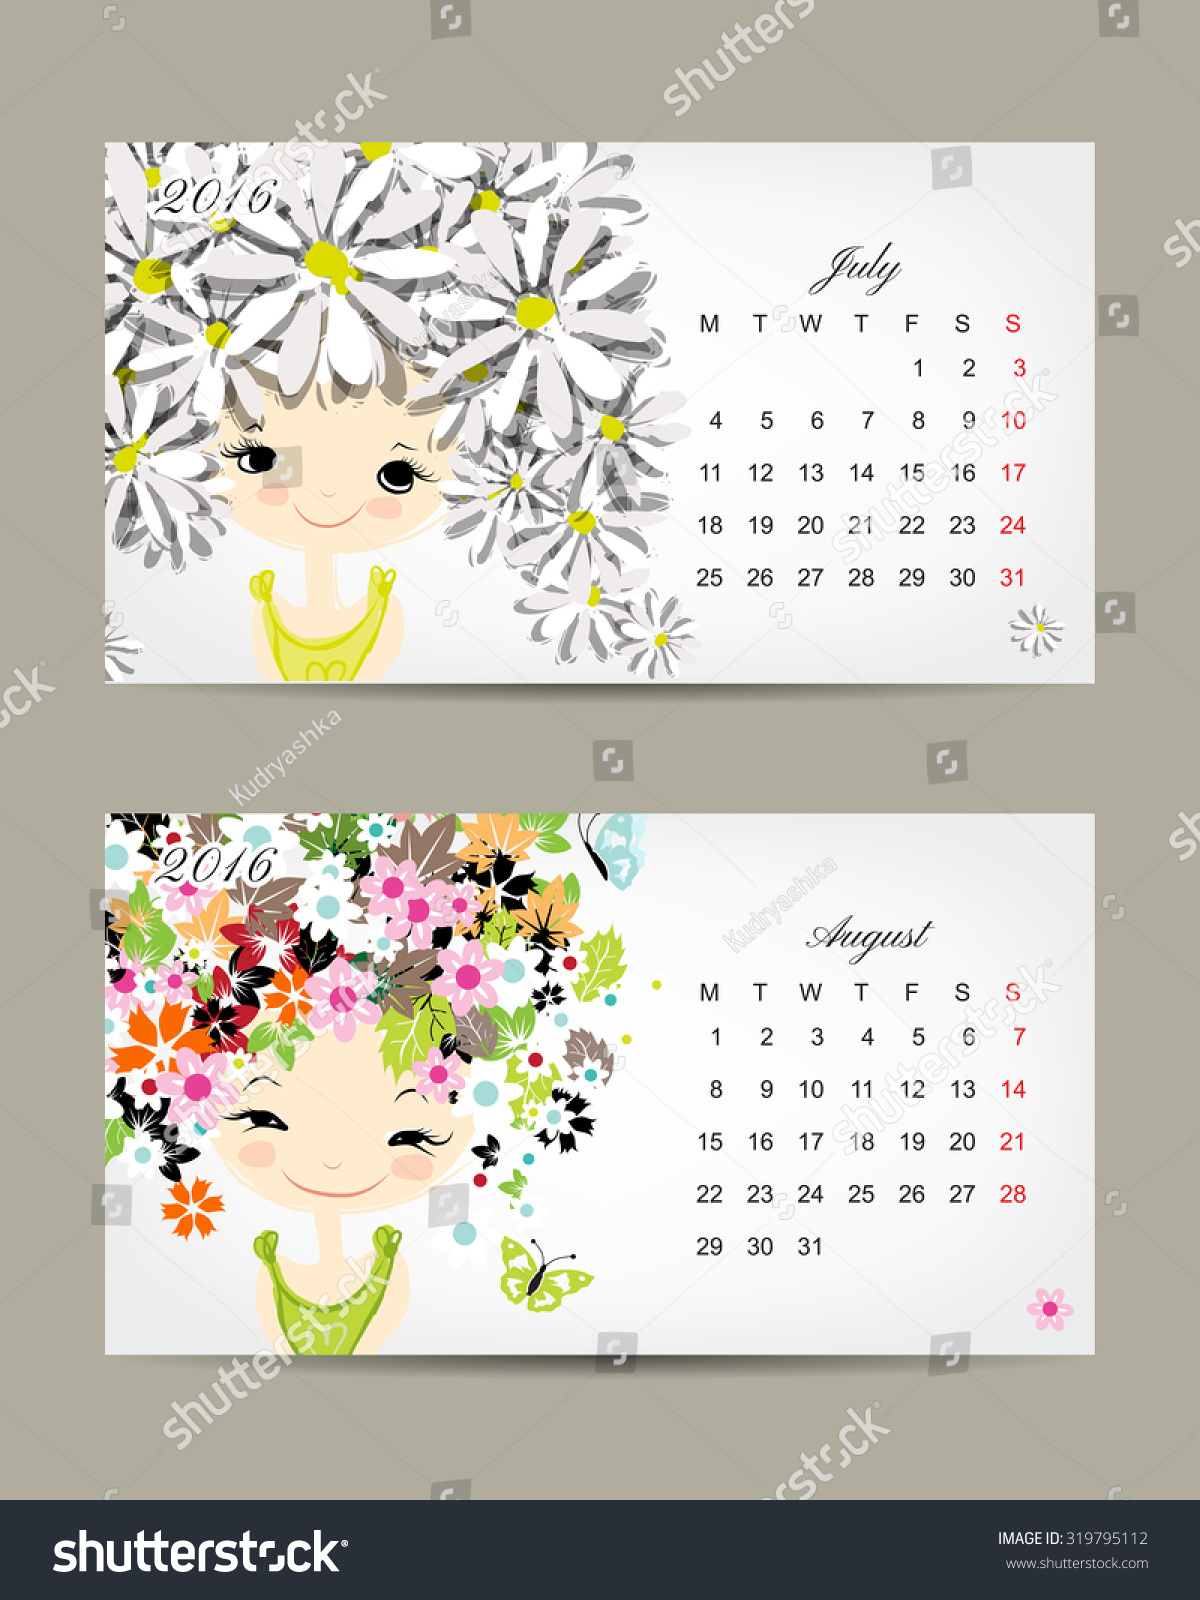 Calendar Month Illustration : Calendar july august months season stock vector